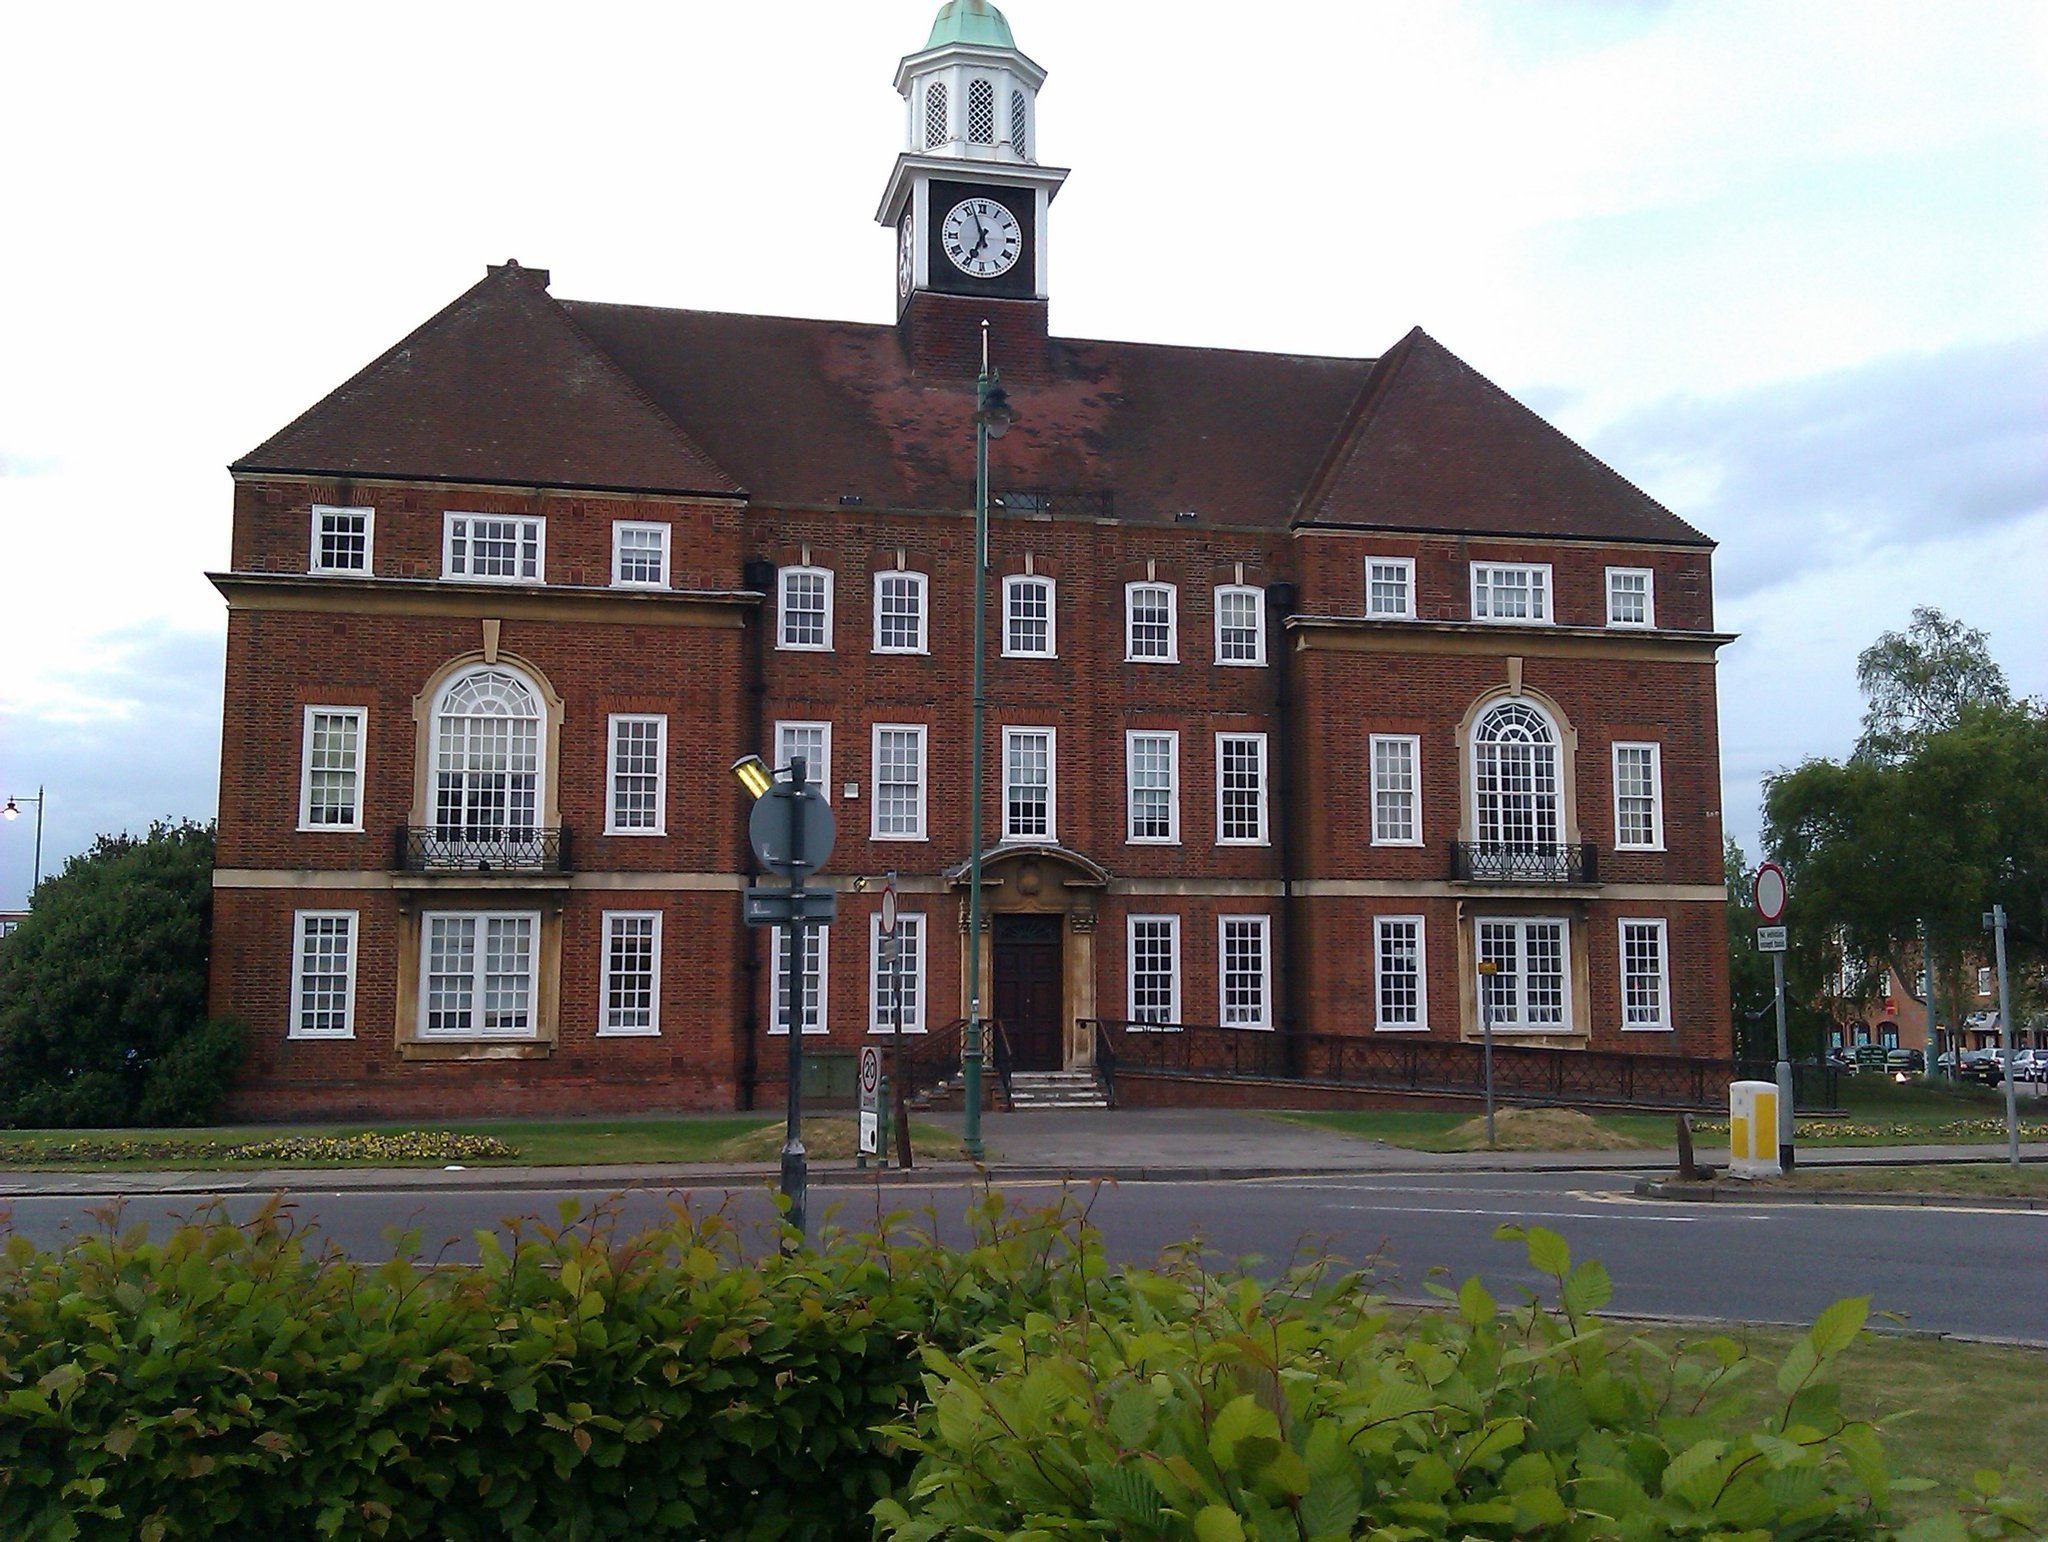 Letchworth Town Hall Letchworth garden city